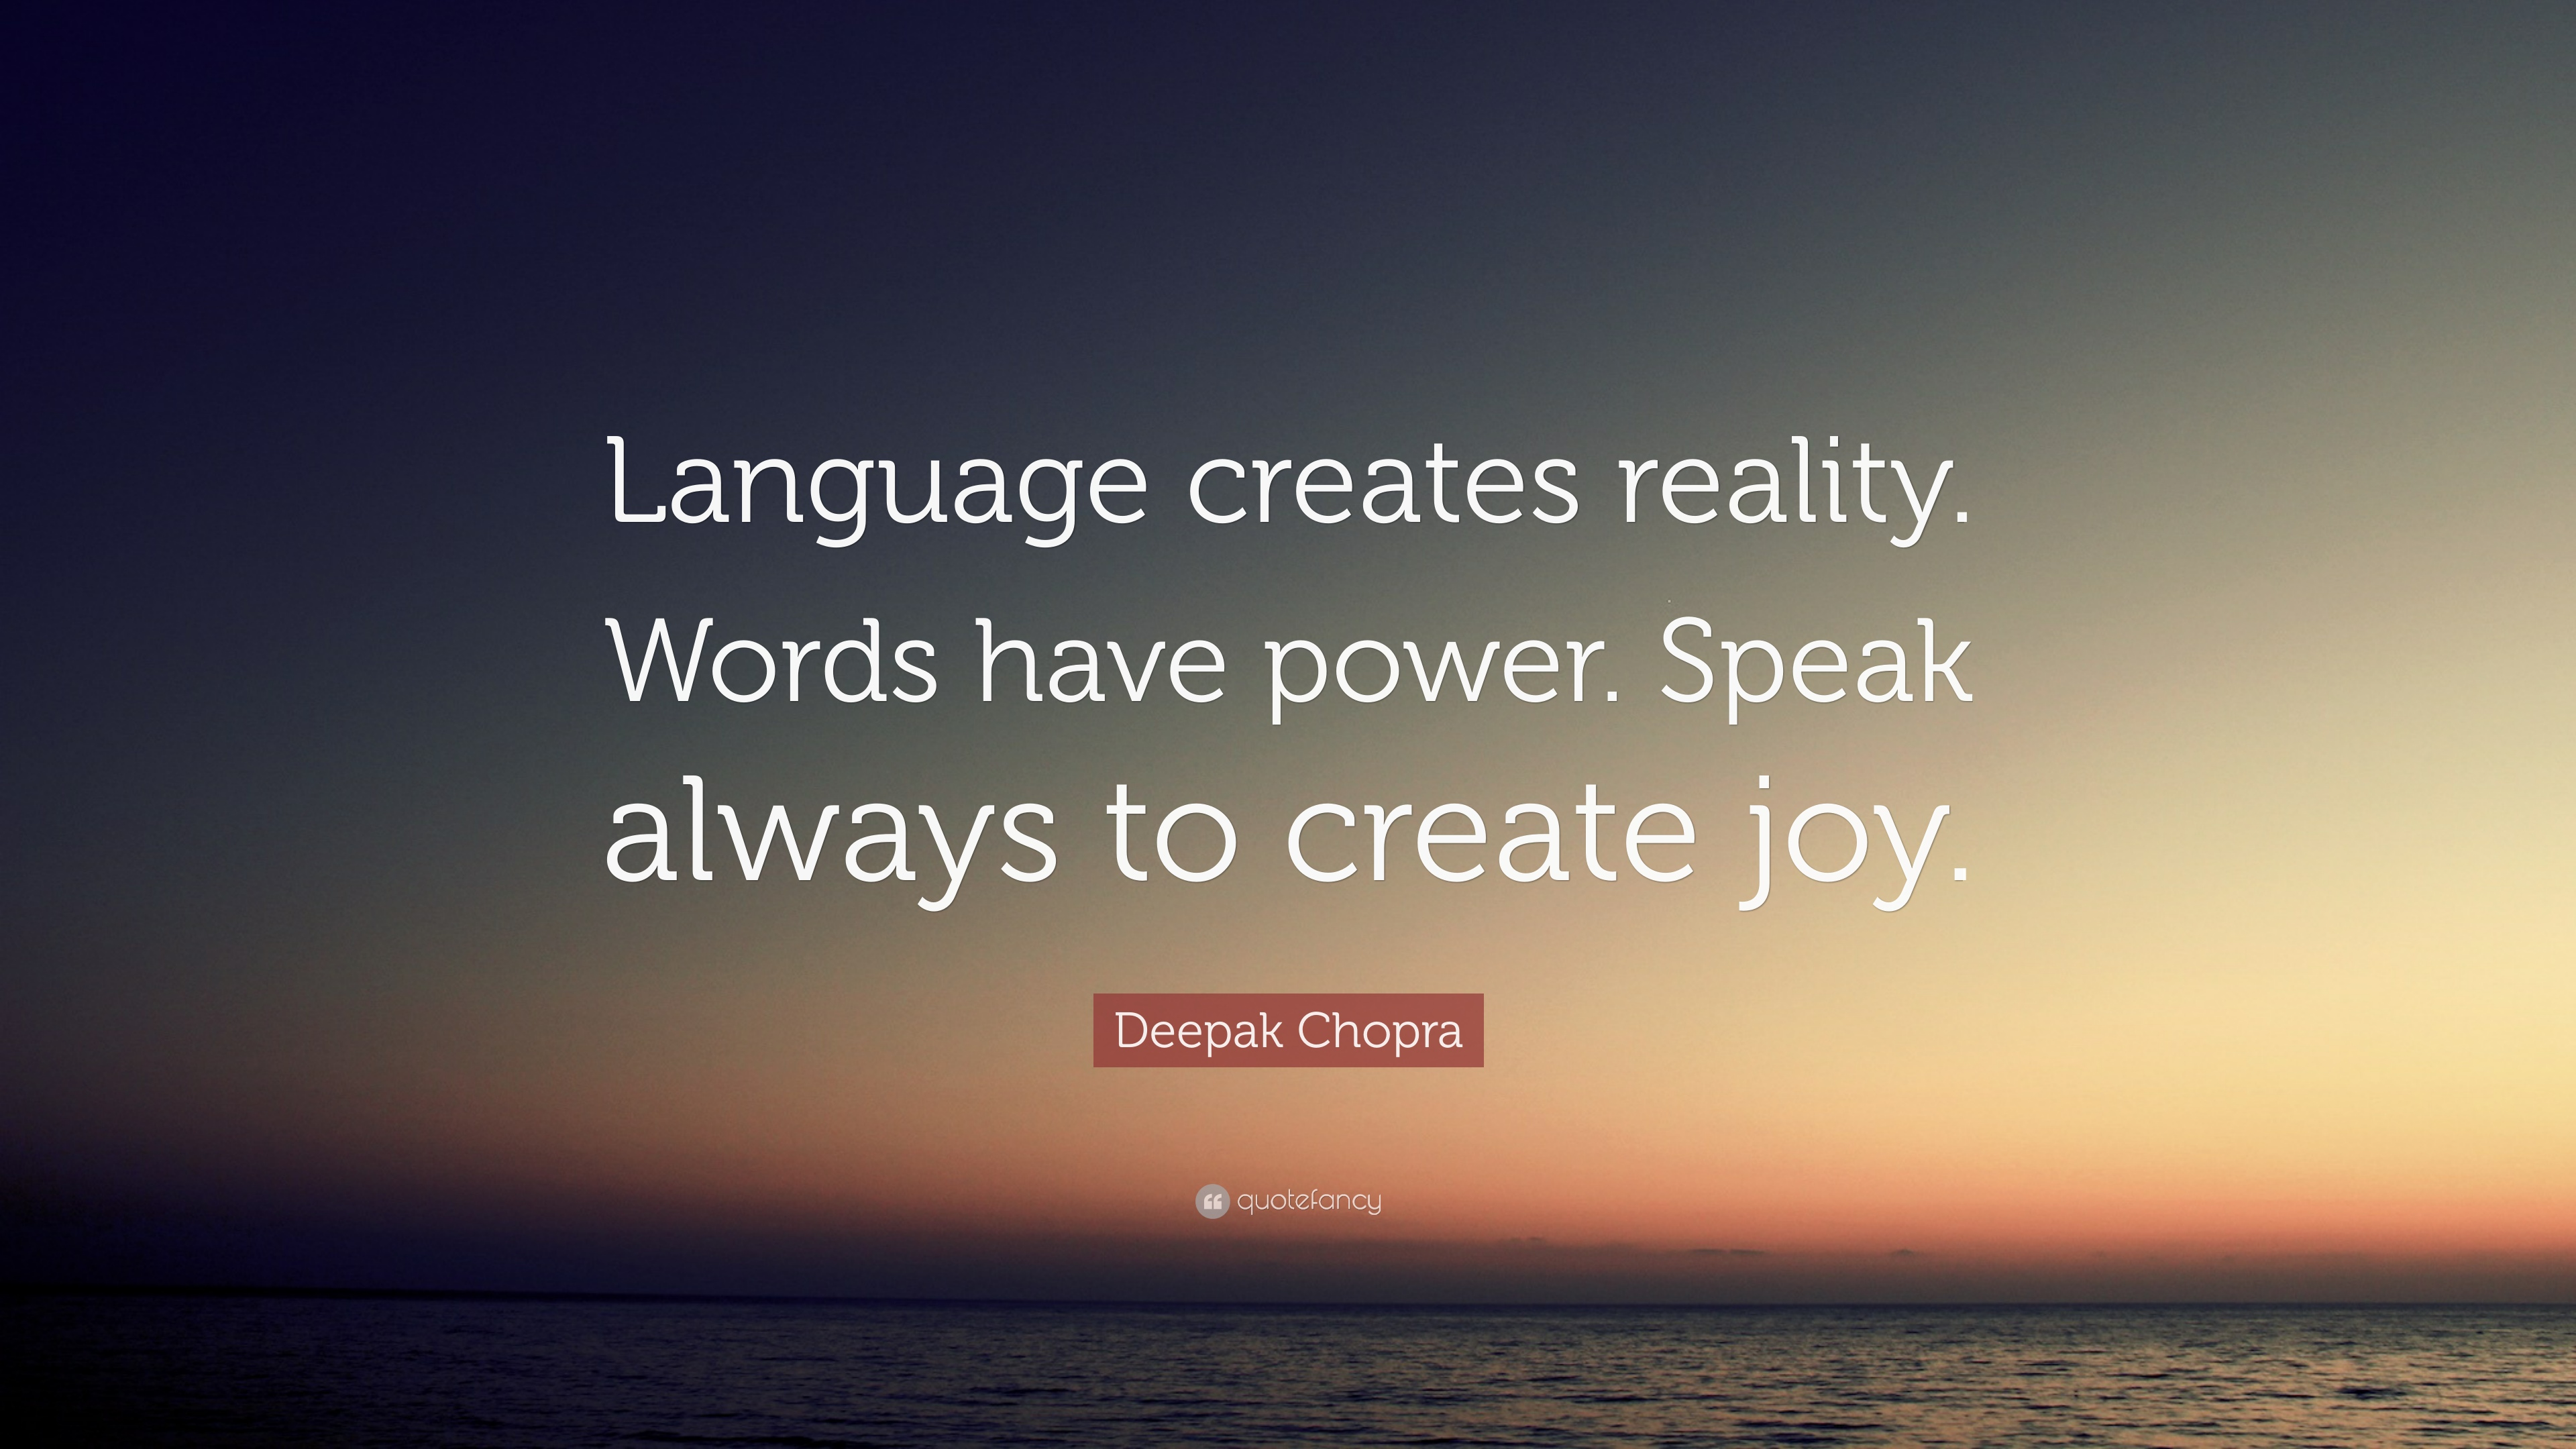 Motivational Life Quotes Wallpapers Deepak Chopra Quote Language Creates Reality Words Have